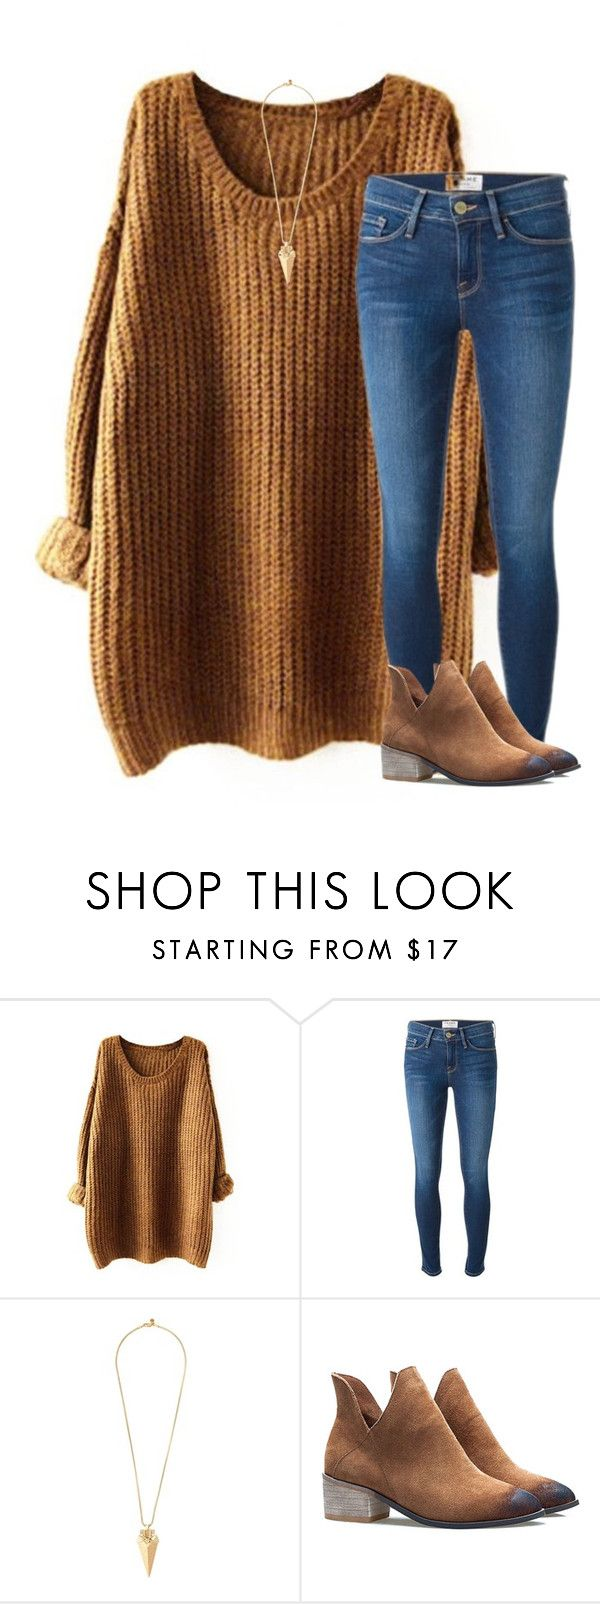 """GOT A HOCO DATE TODAY!!!!!"" by katherinecat14 ❤ liked on Polyvore featuring Frame Denim and Tory Burch"